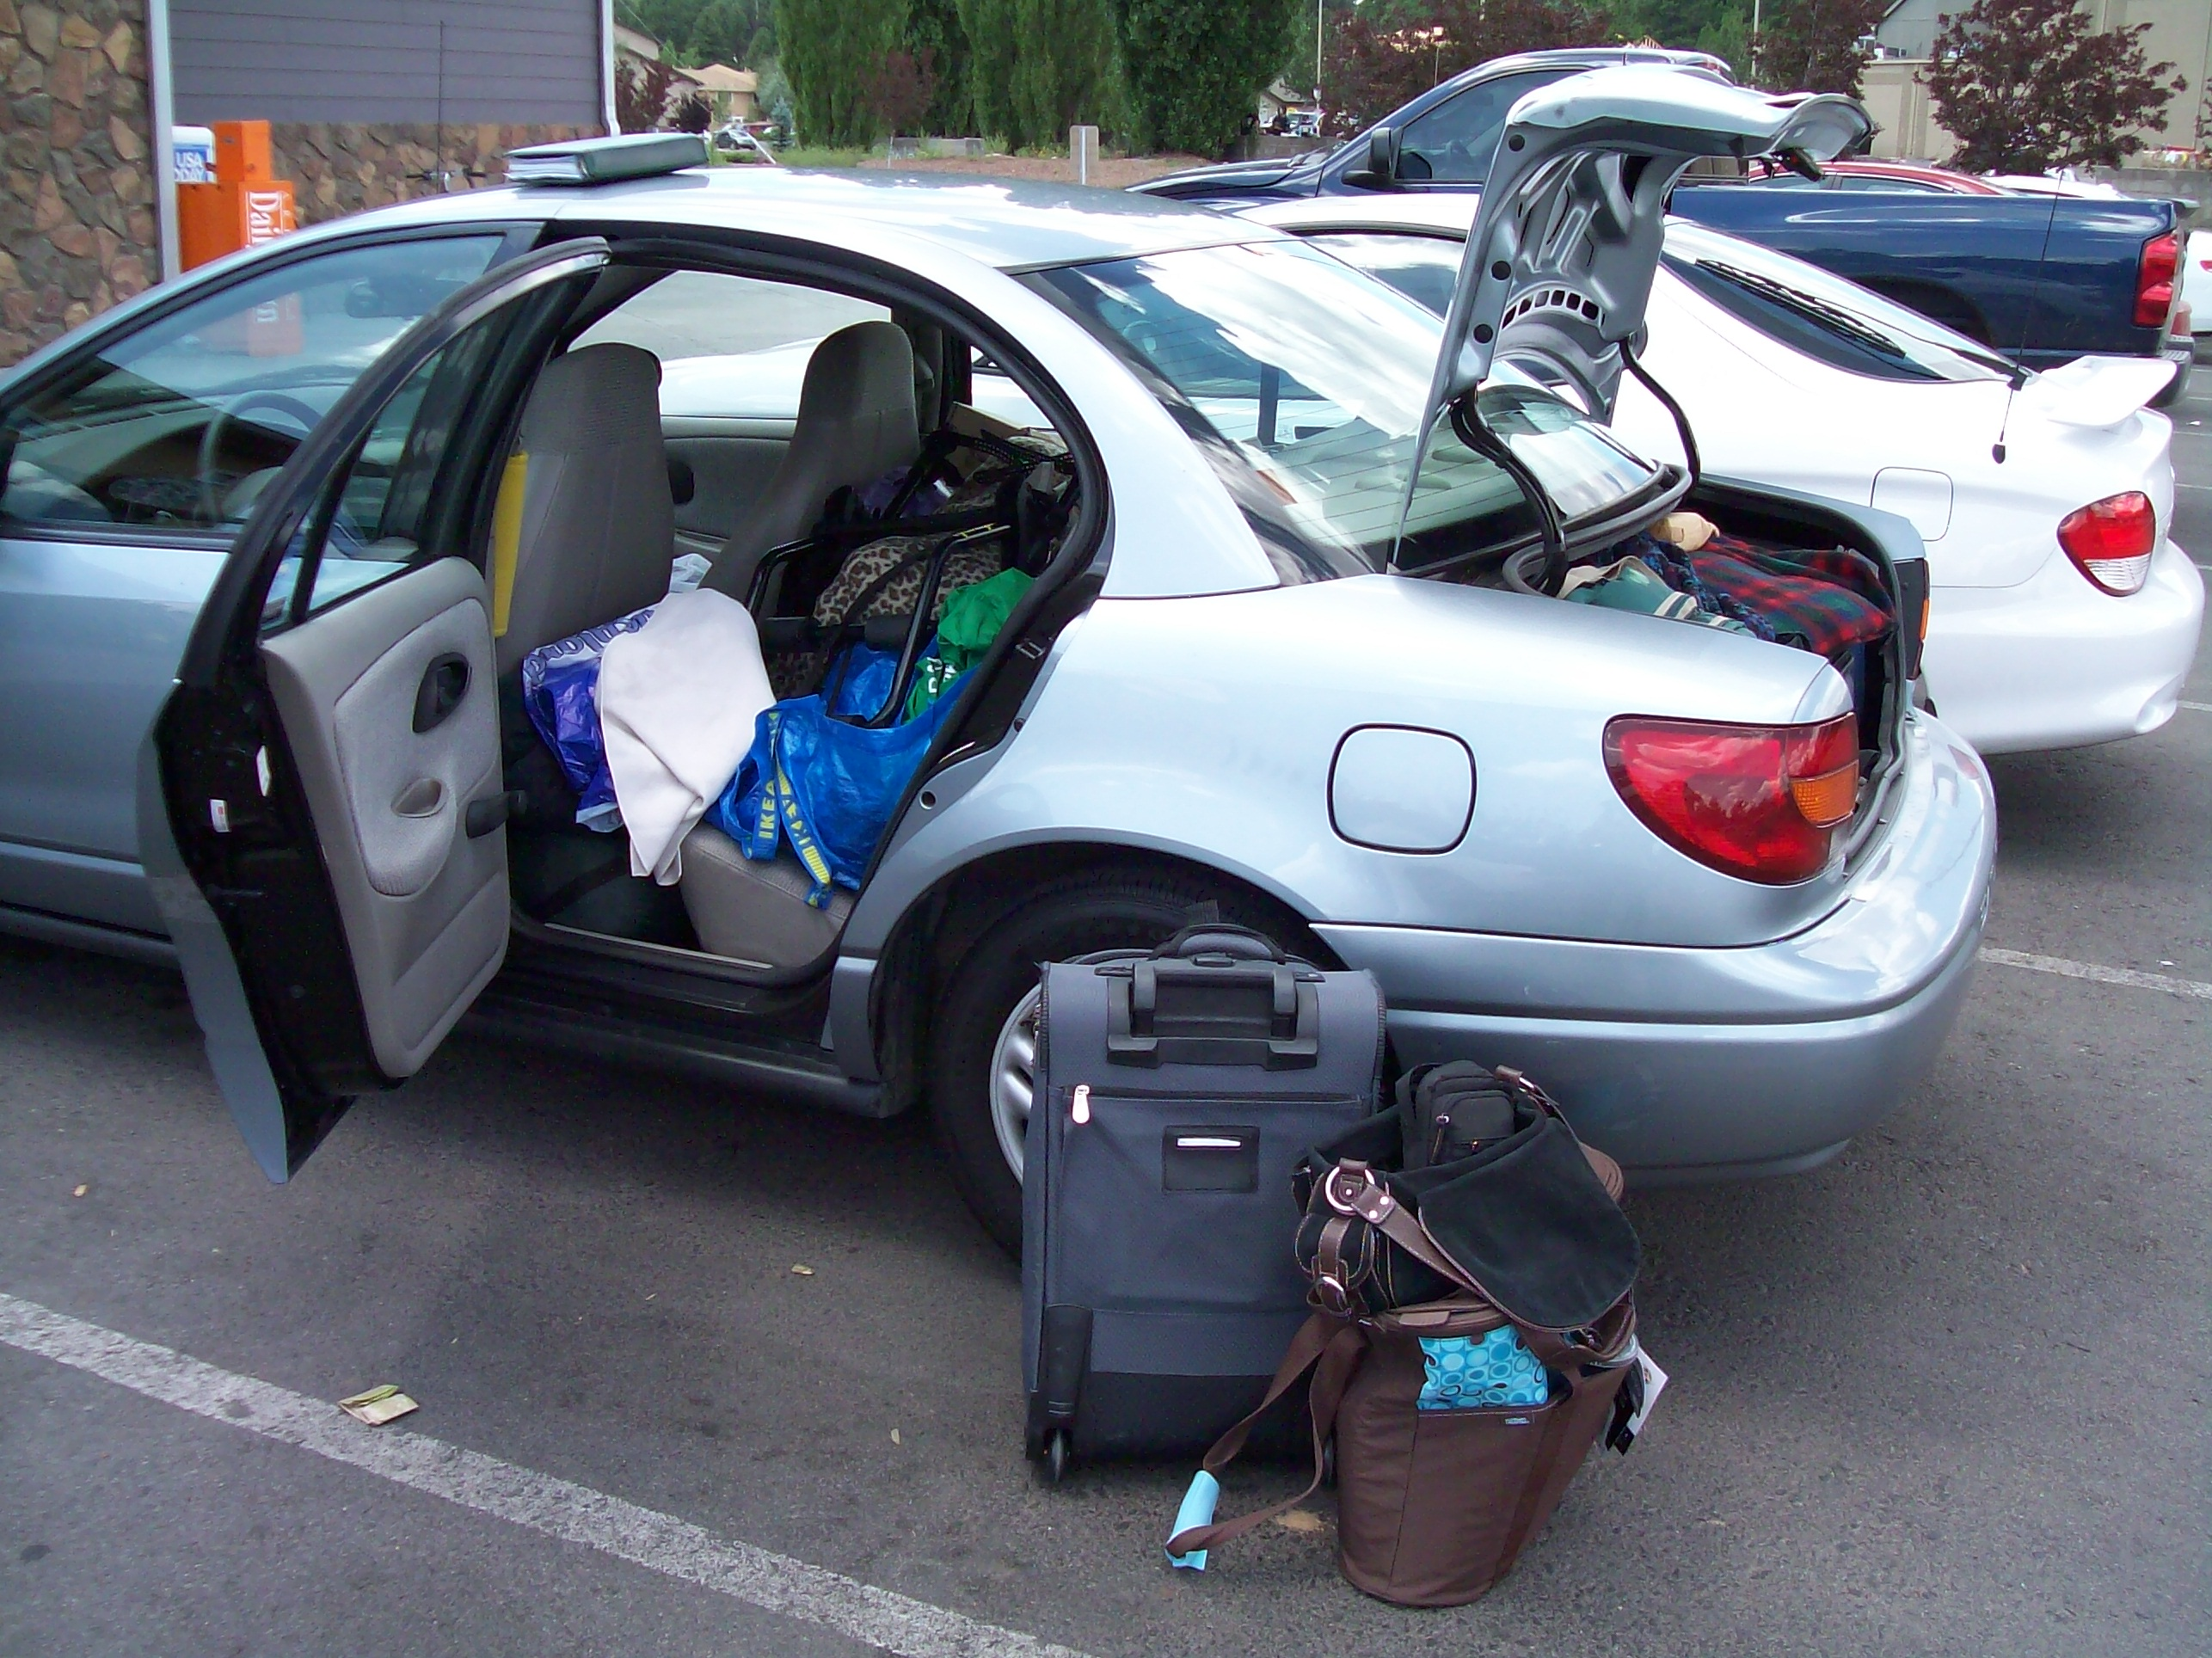 NOT the Best Way To Pack a Suitcase or Car